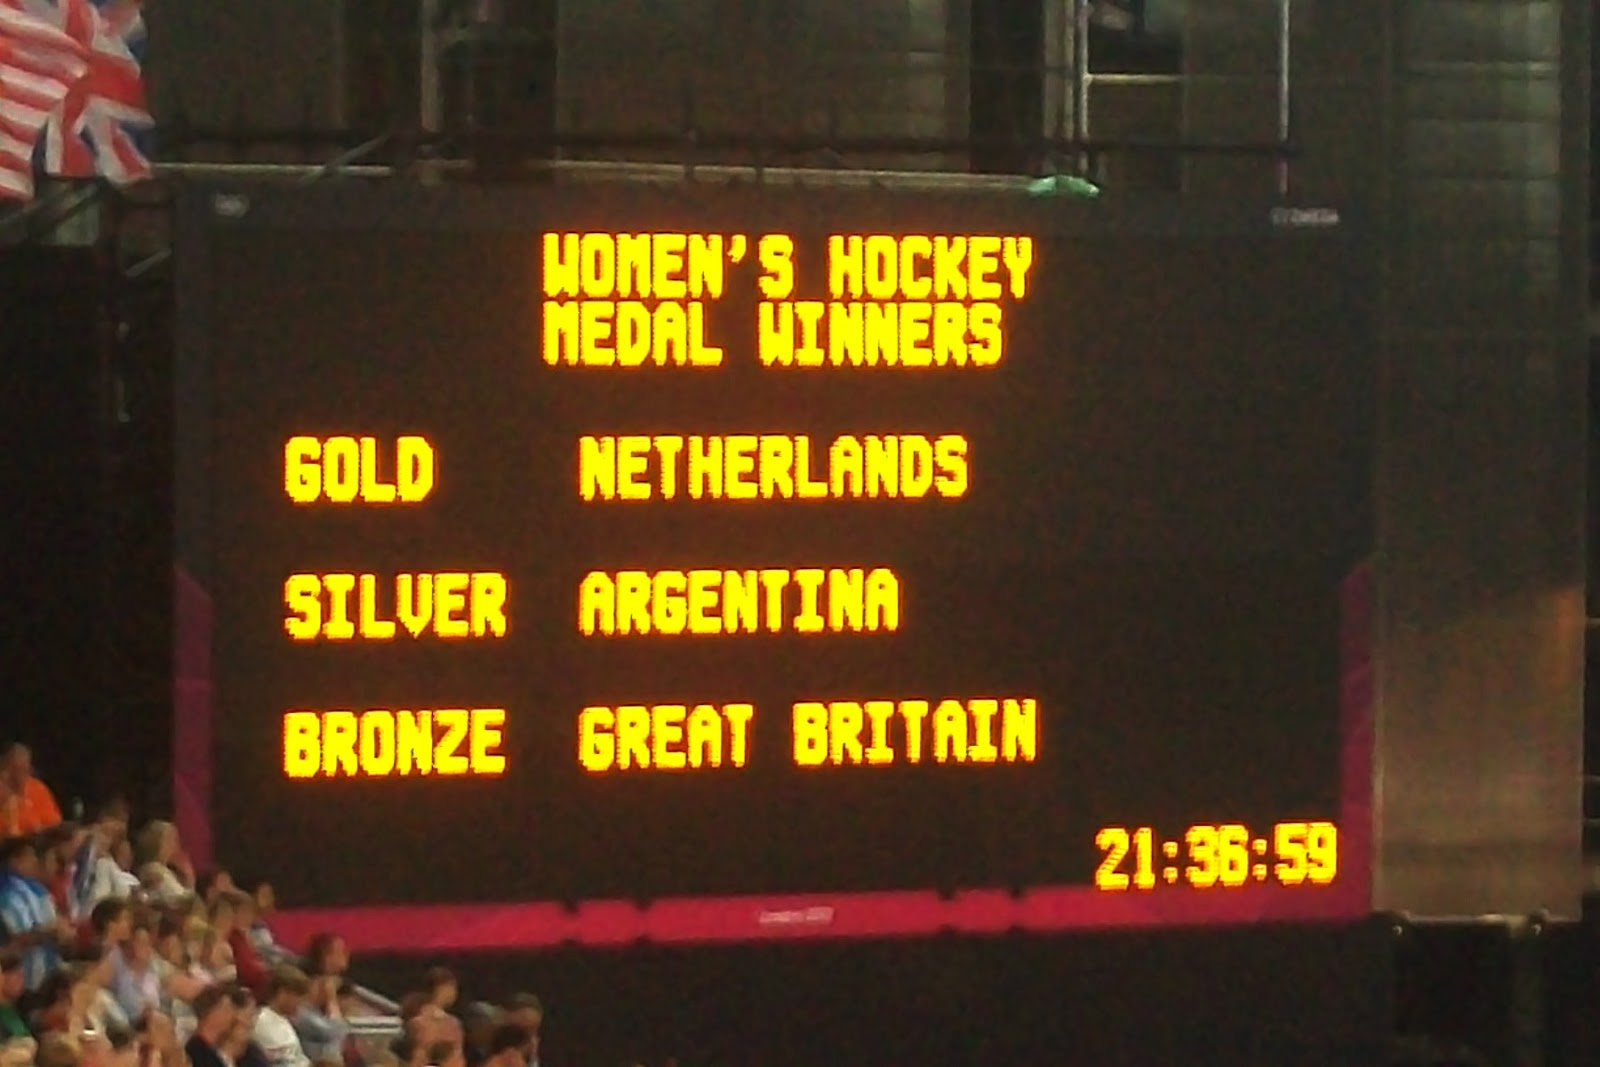 London Olympic Women's Hockey Medal Ceremony 2012